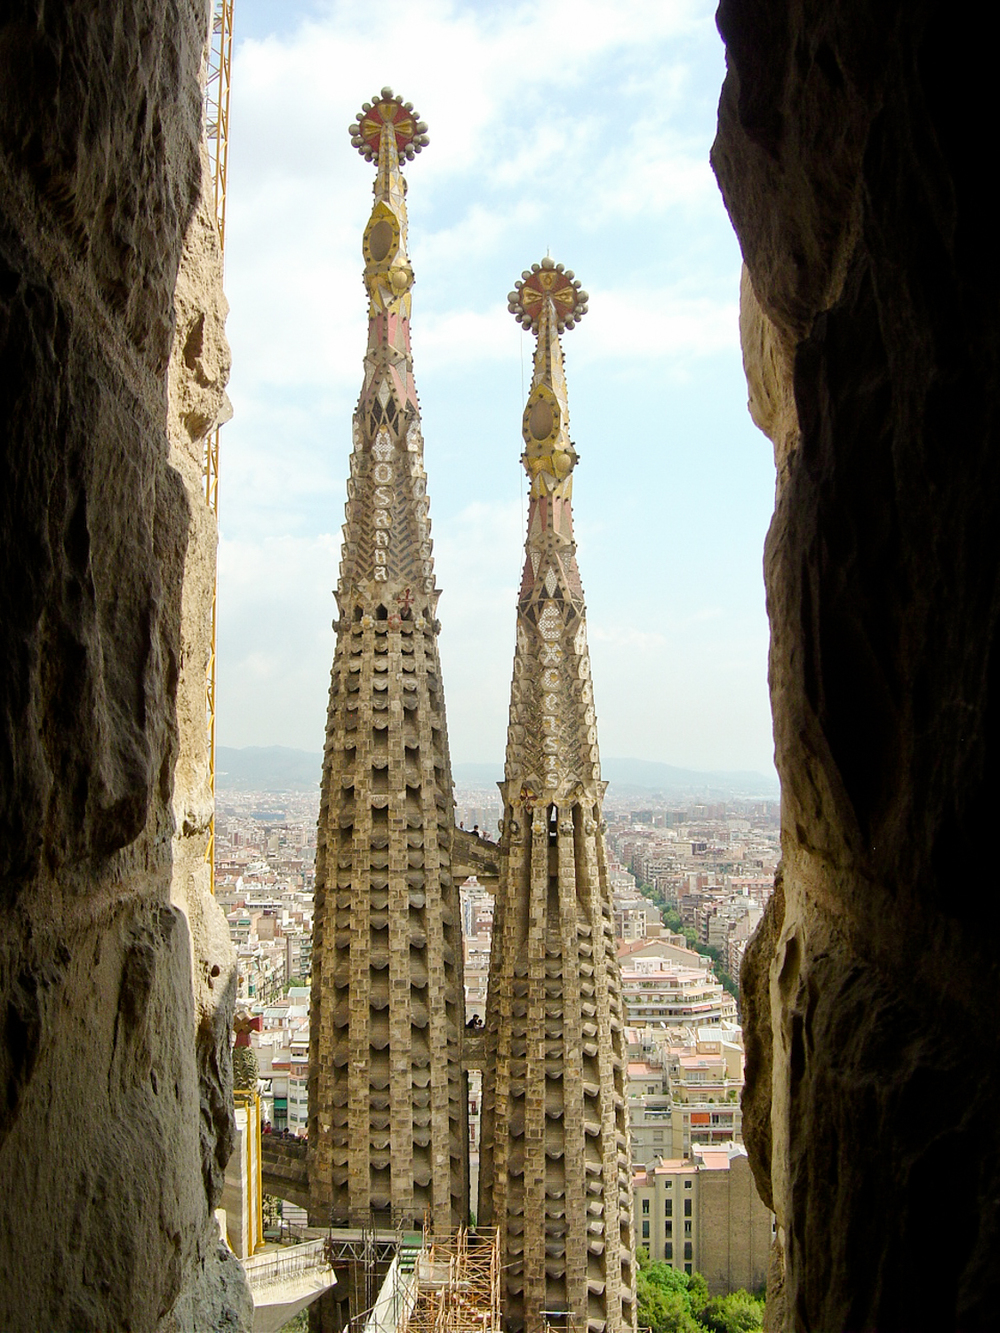 2005: a view of two towers